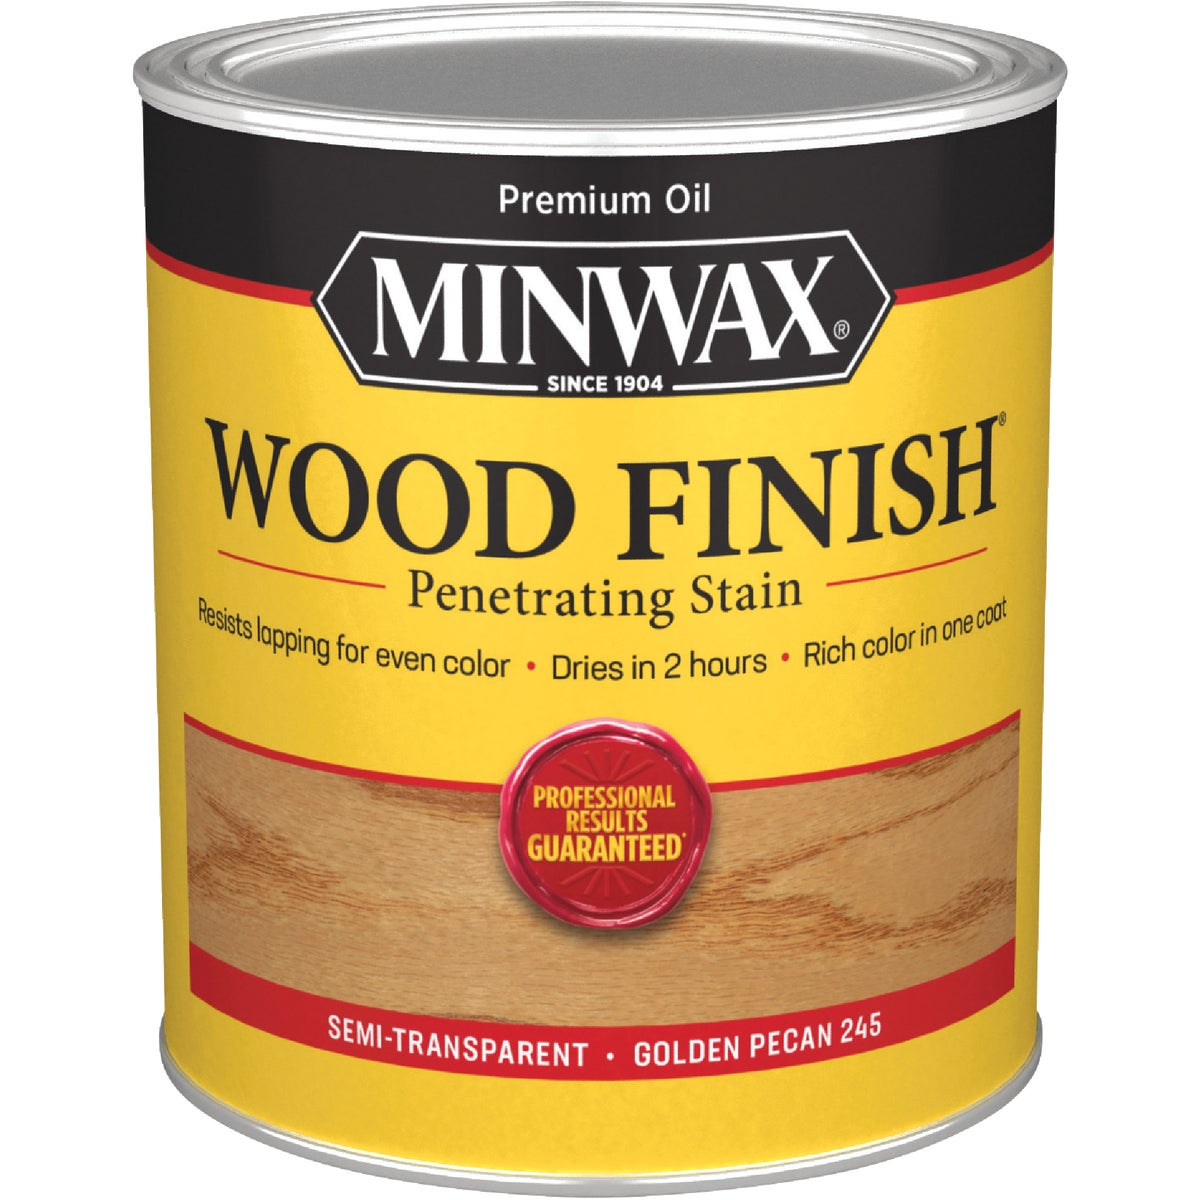 GOLDEN PECAN WOOD STAIN - 70041 by Minwax Company